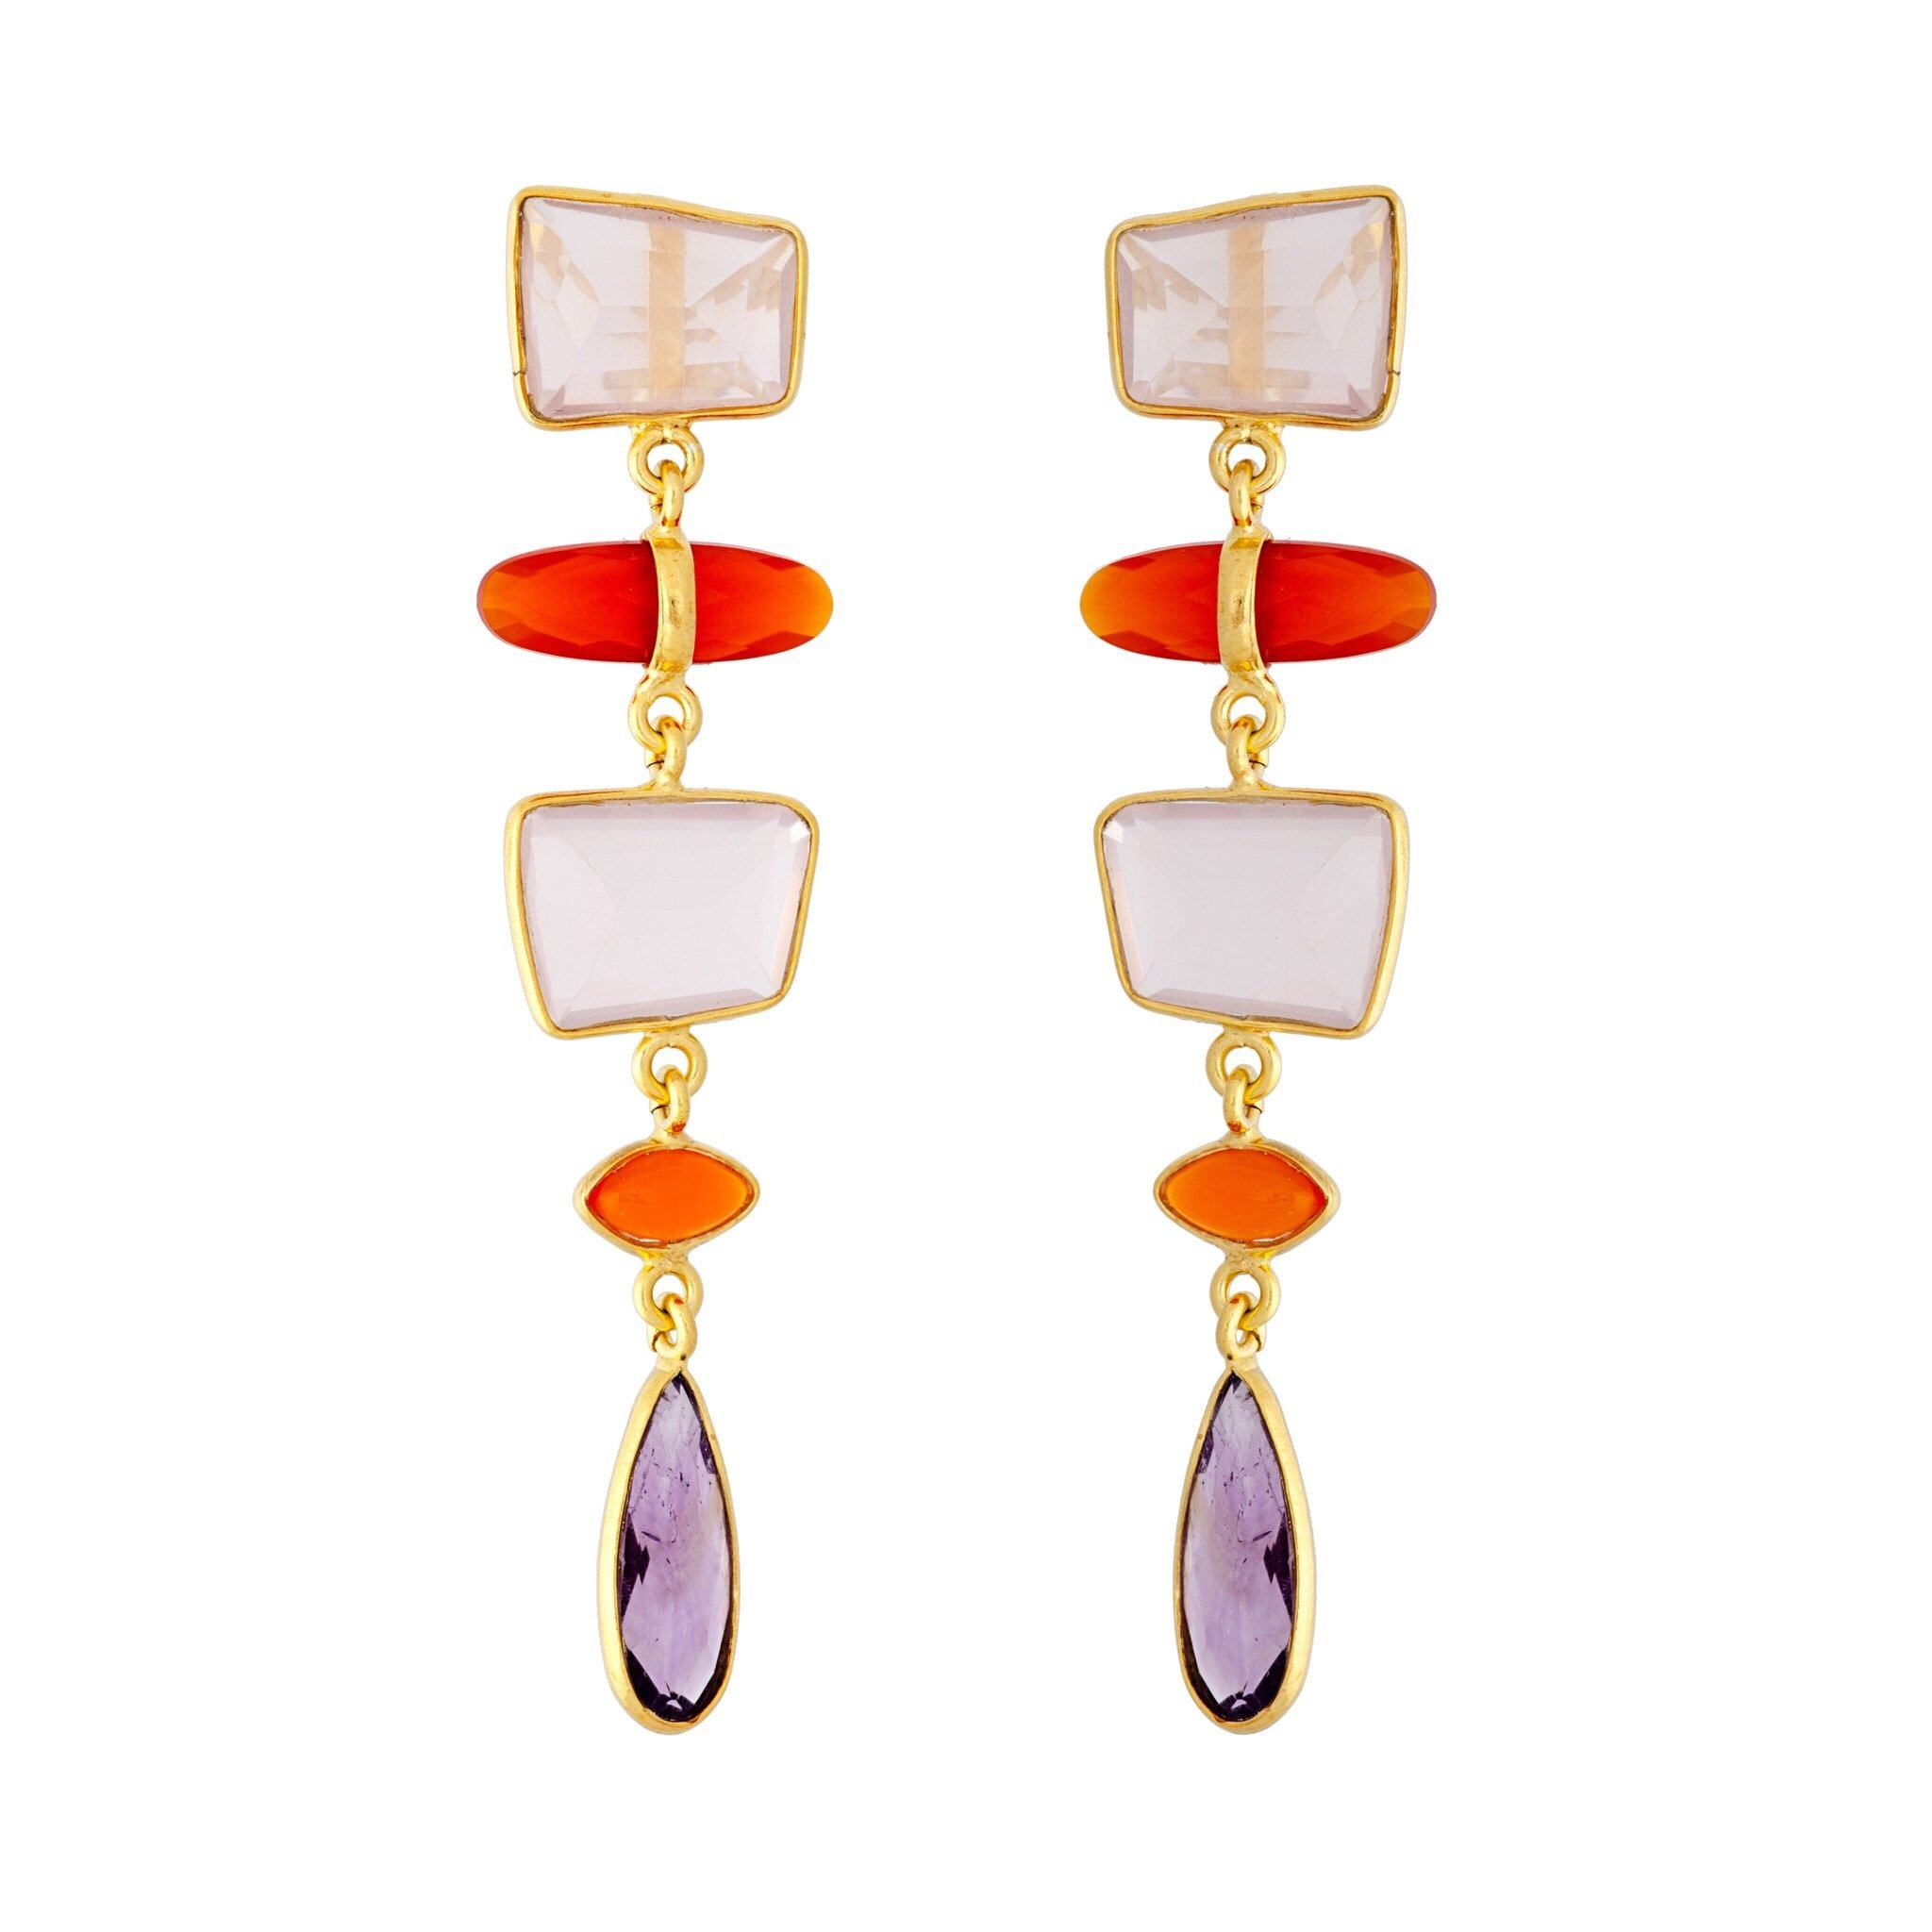 UDAIPUR amethyst earrings